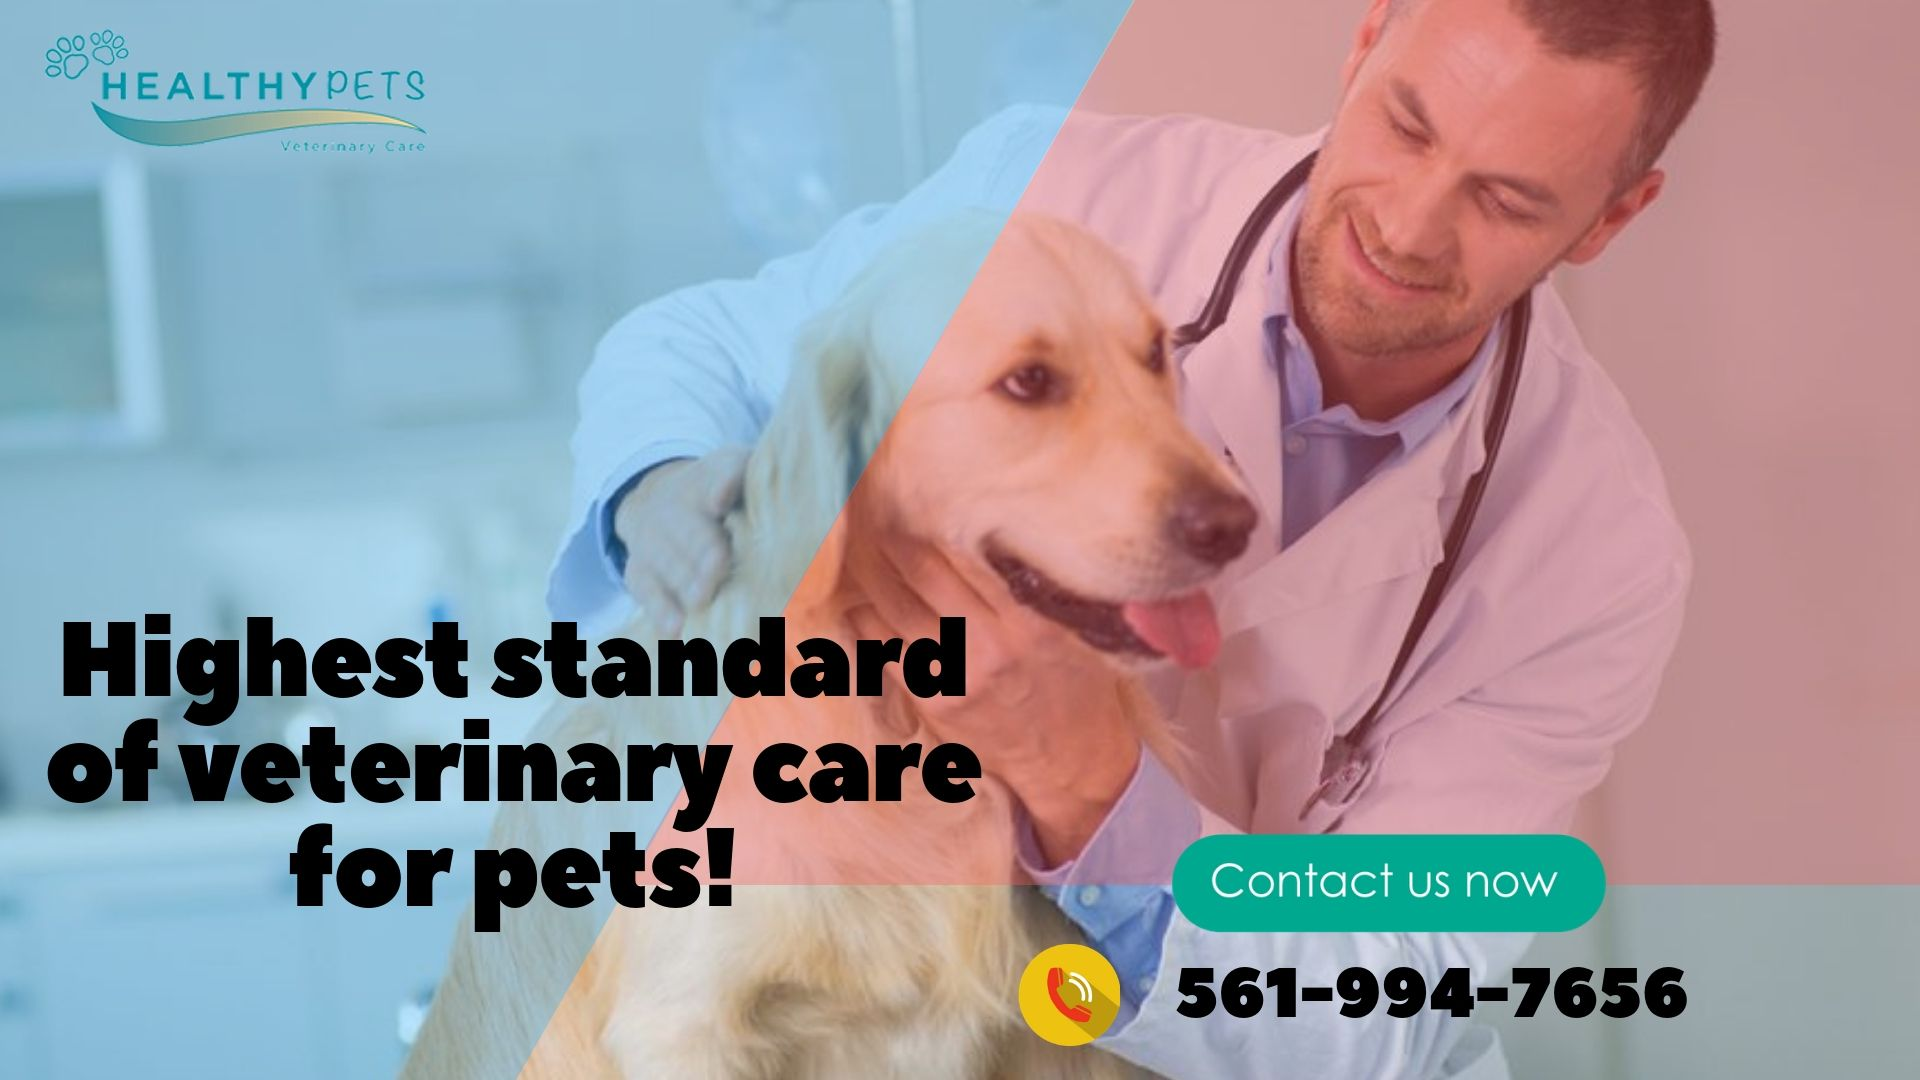 Looking For A Pet Care Services The Veterinarians At Healthy Pets